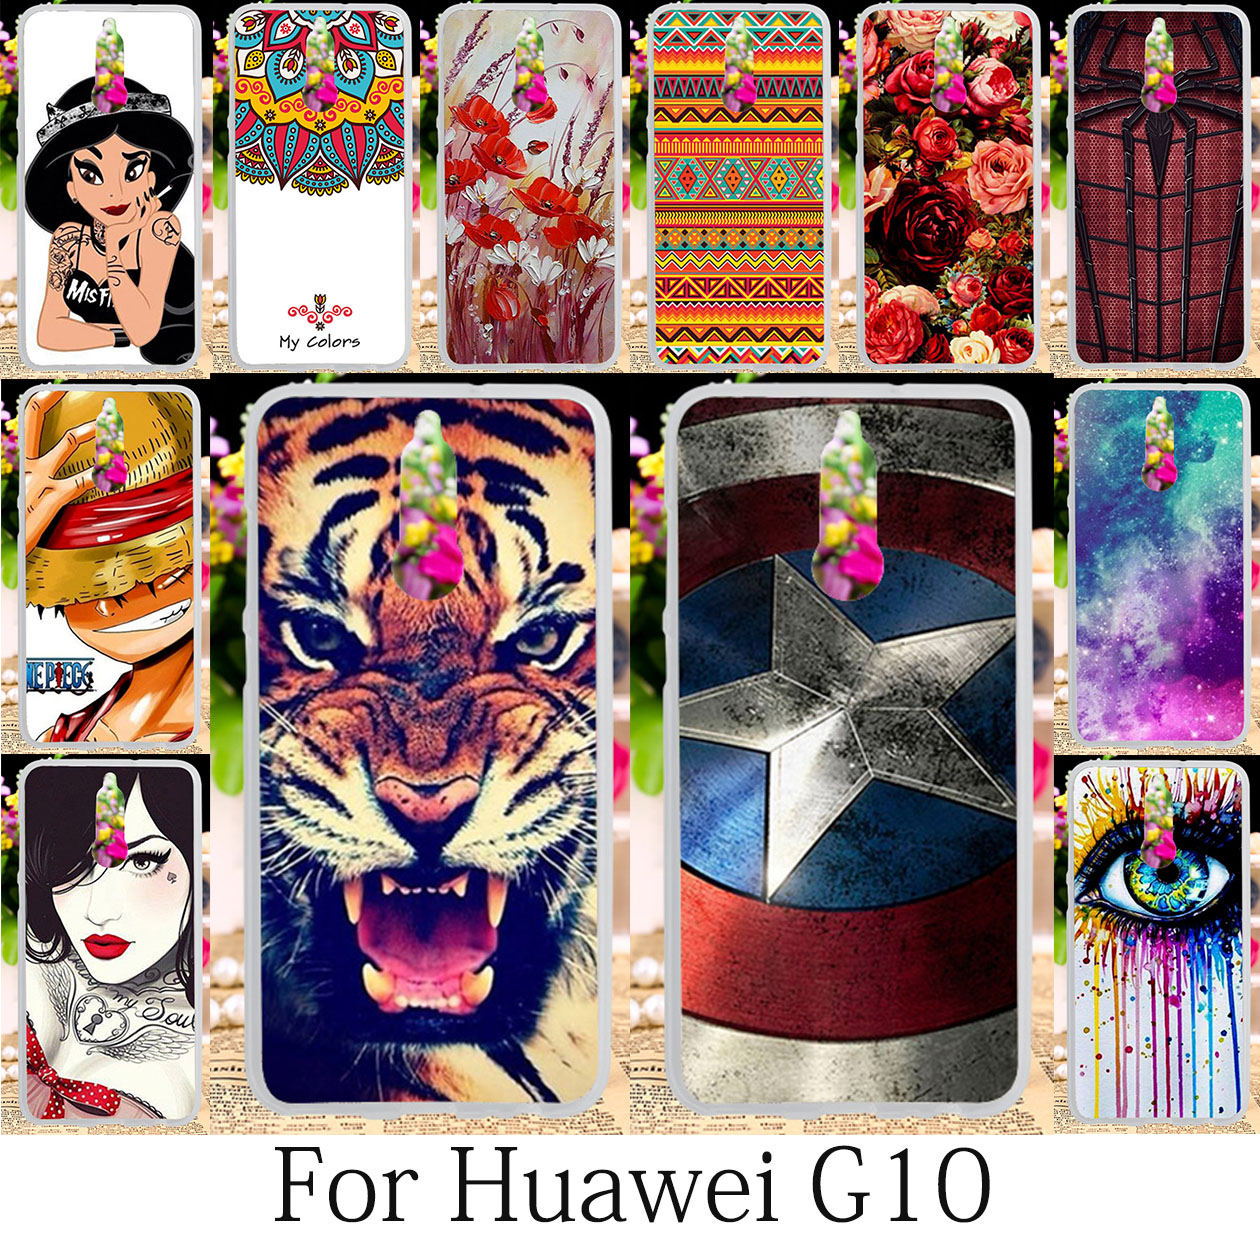 TAOYUNXI For Huawei Mate 10 Lite Case Silicone Patterned Coque Huawei Nova 2i Cover Fitted Anime G10 Honor 9i Cases Bag 5.9 inch